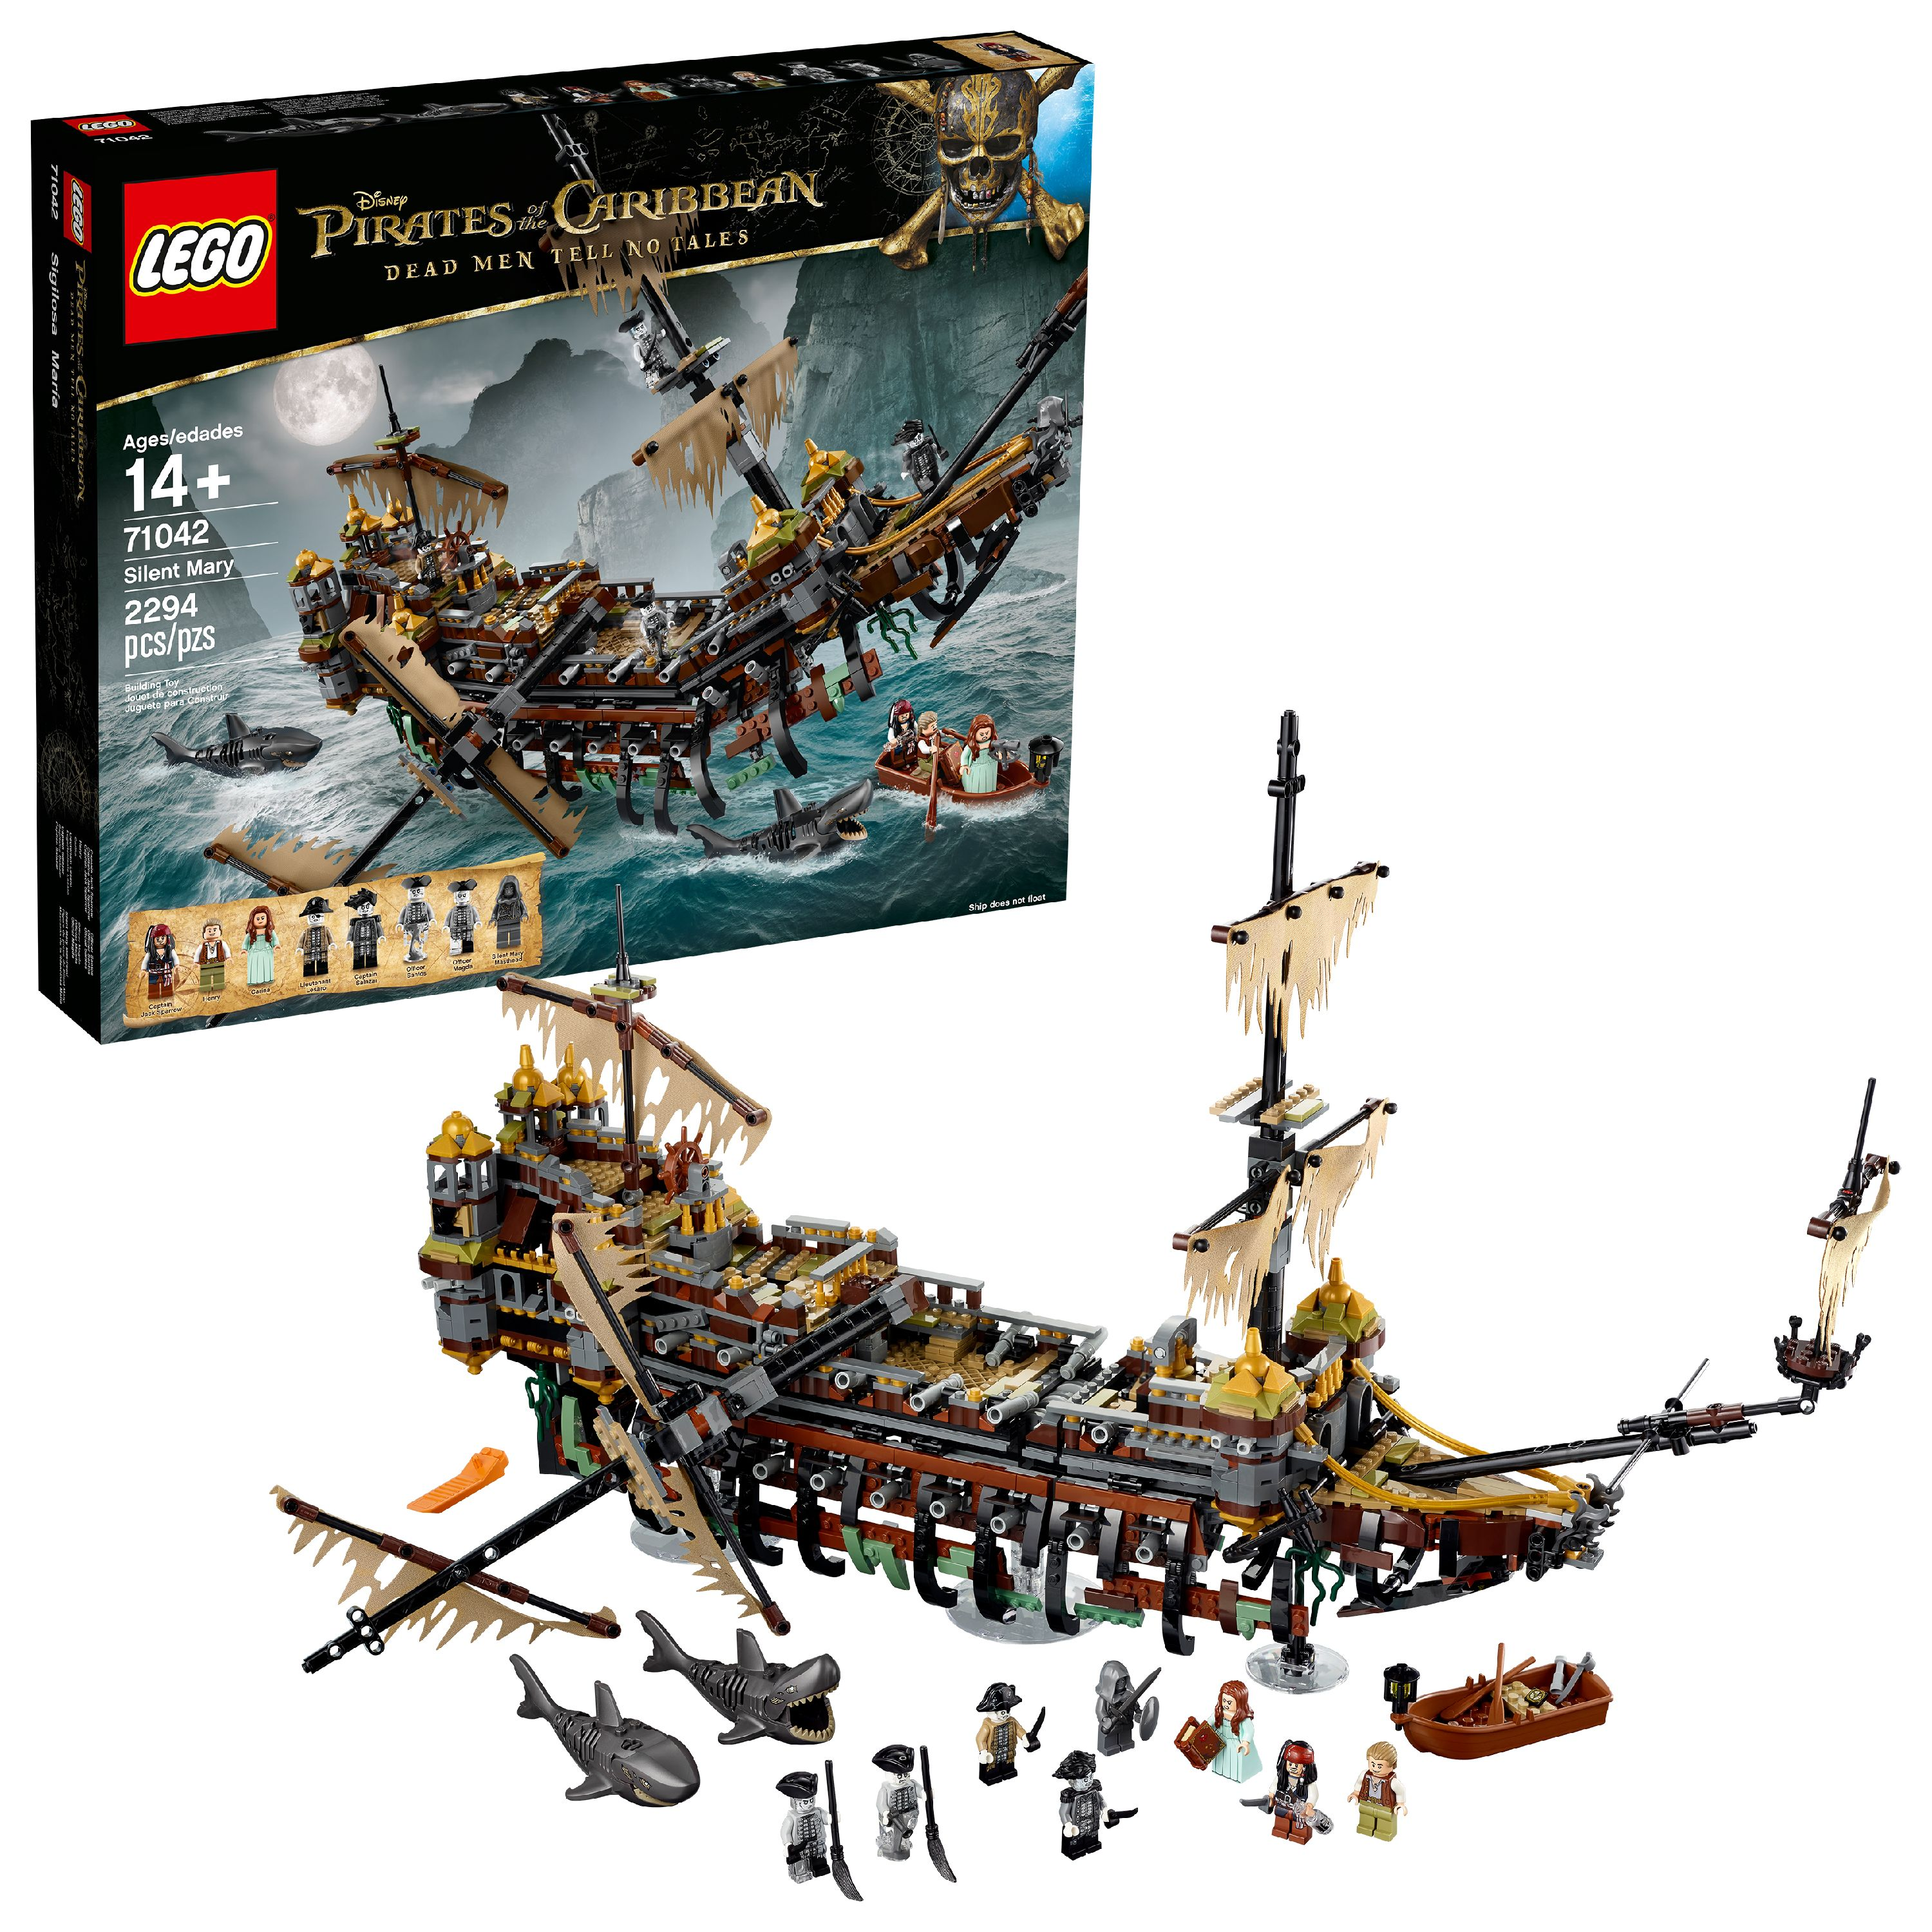 lego pirates of the caribbean tm silent mary 71042